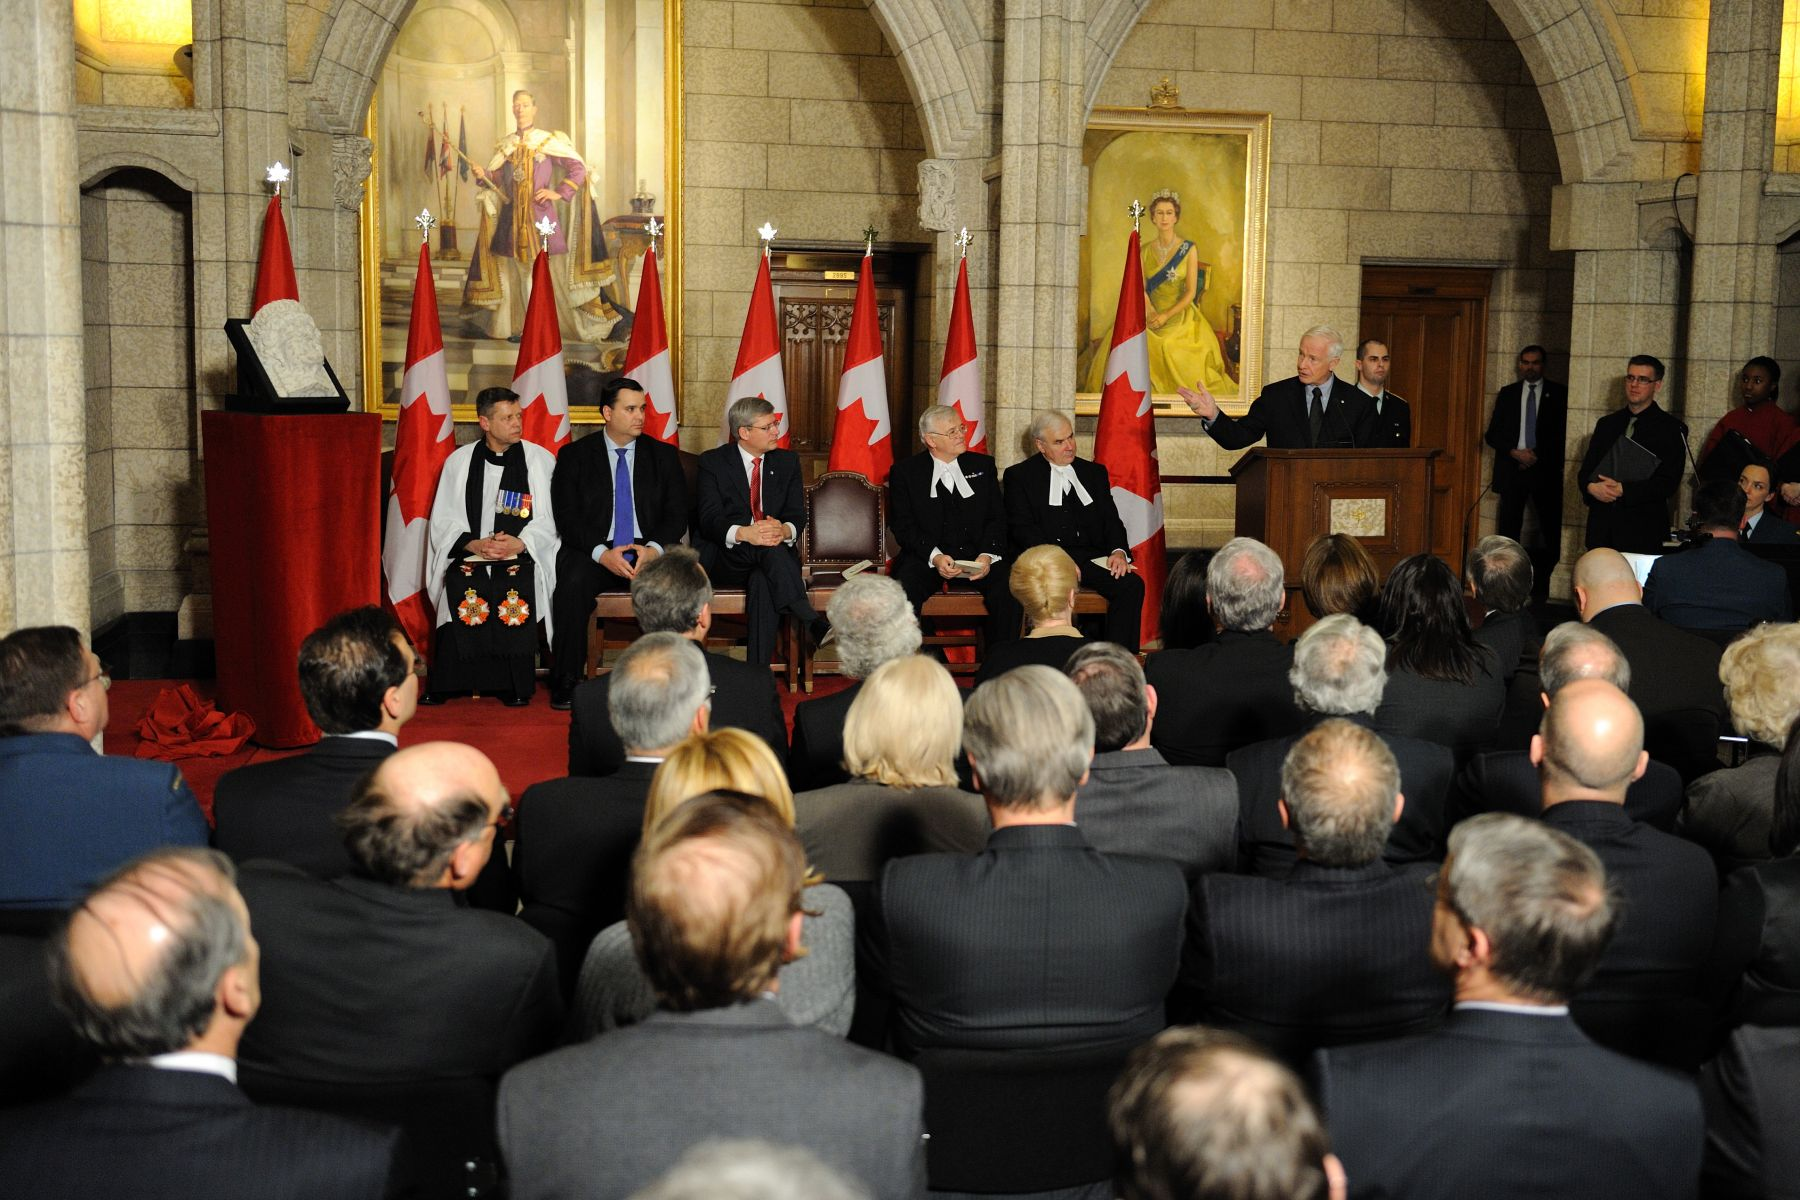 The maquette of the sculptured corbel was first unveiled by Her Majesty The Queen at a ceremony at Rideau Hall, on June 30, 2010, as part of her Royal Tour of Canada.